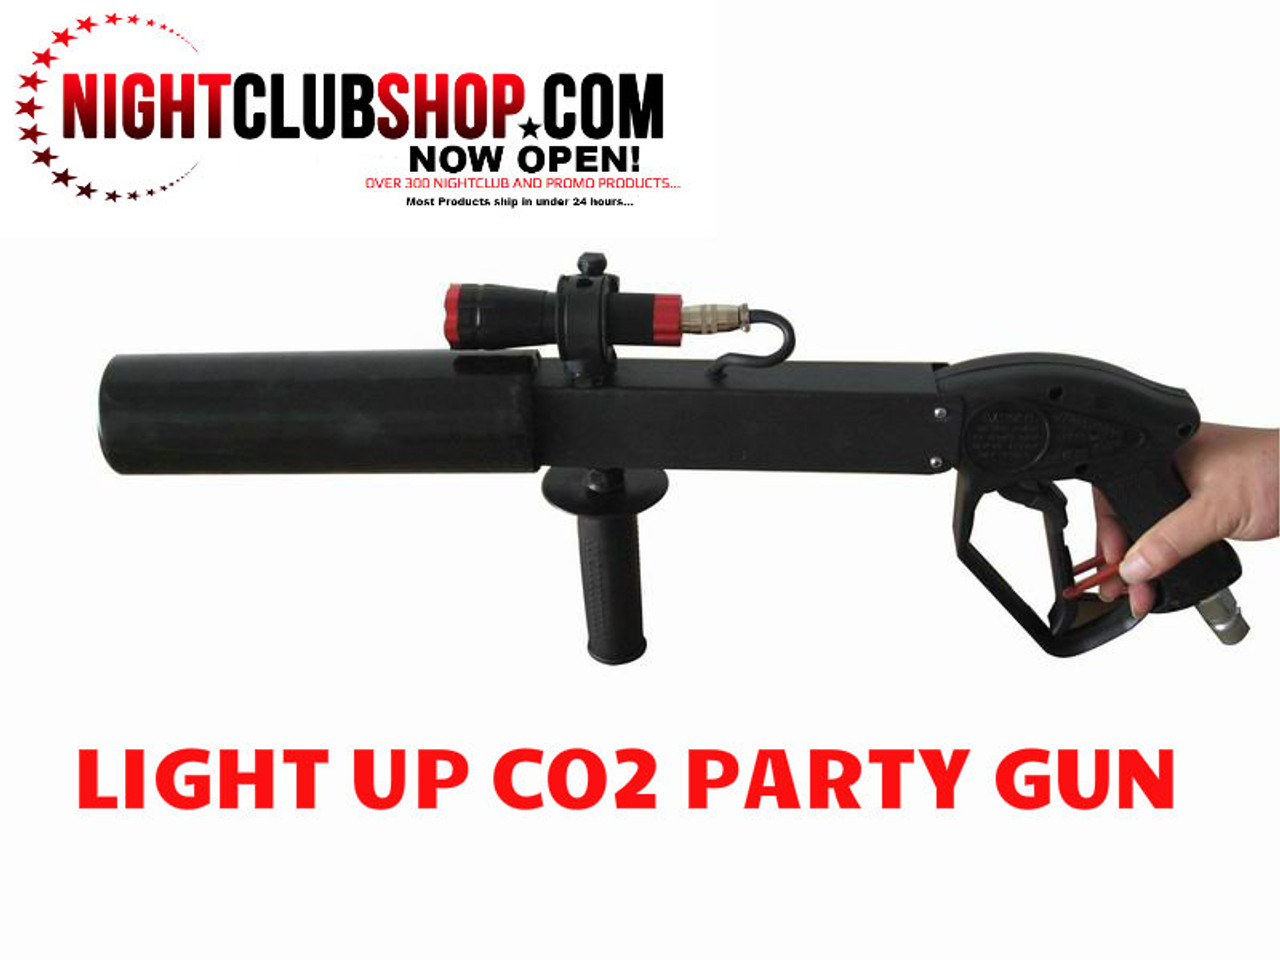 co2 cannon, co2 gun,gun,cryo, blaster, party cannon, co2 cannon, co2 effect, effects, special effects, light up co2 gun, light,